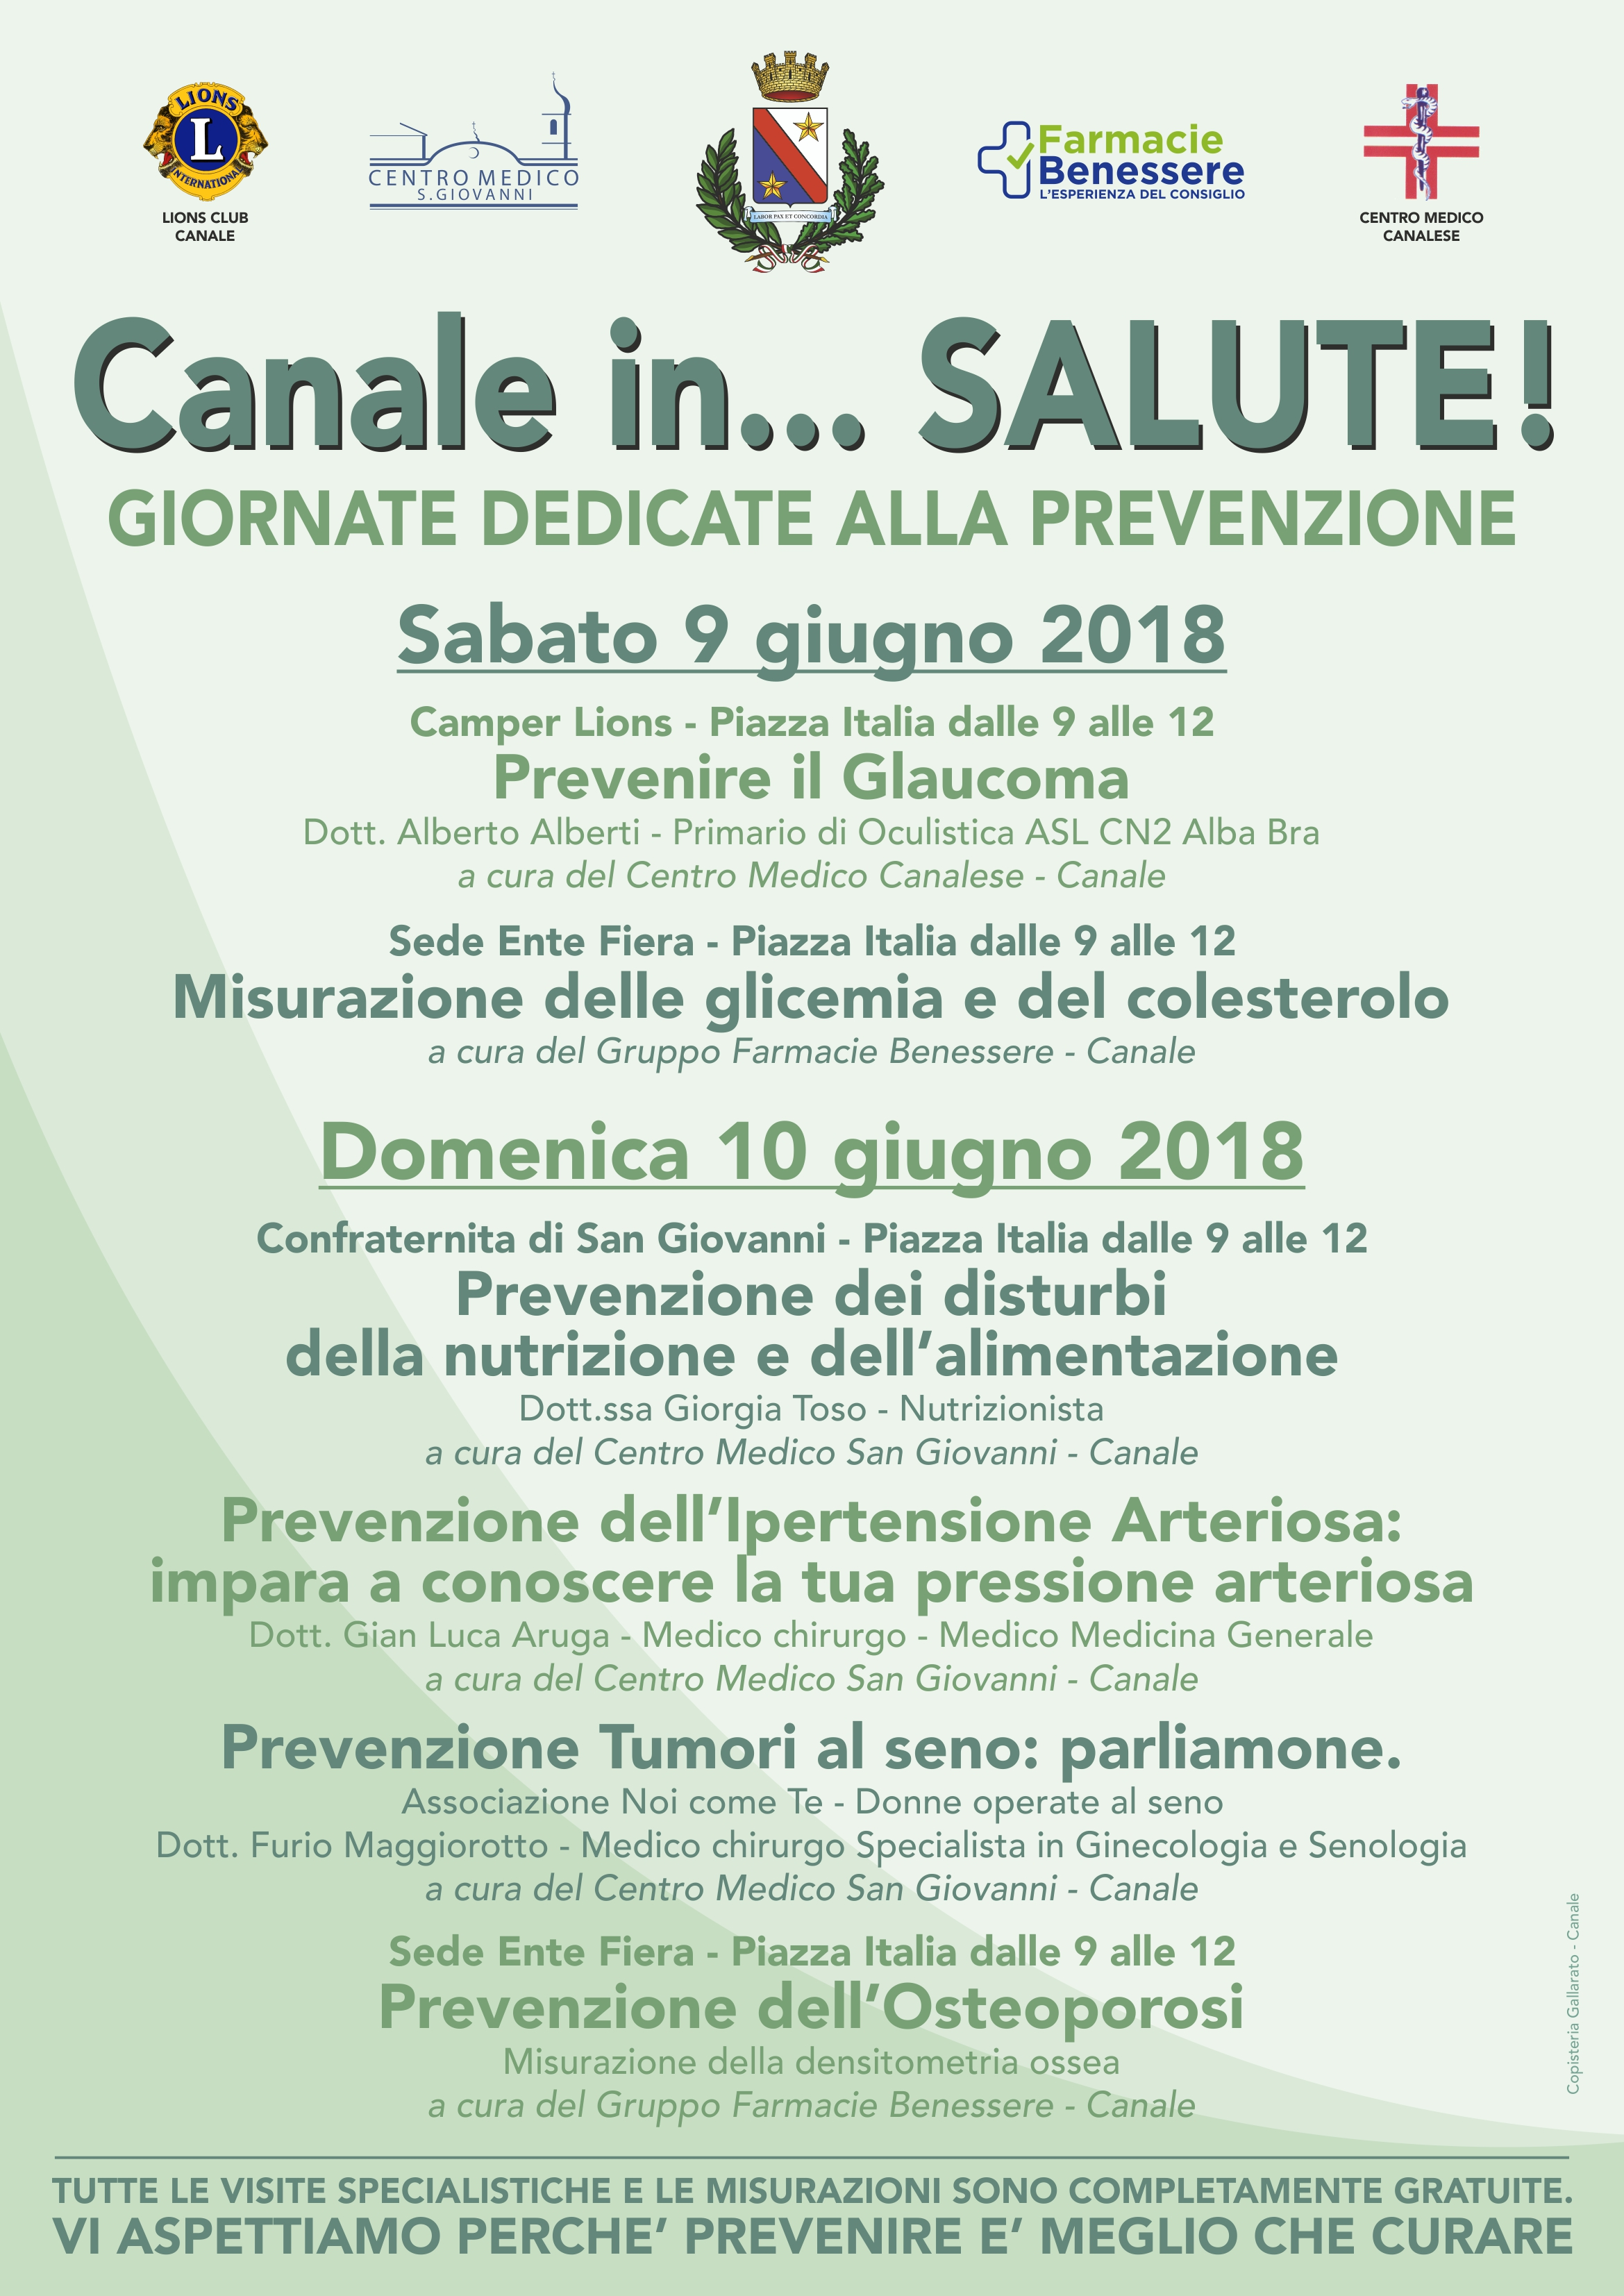 Canale in... Salute!